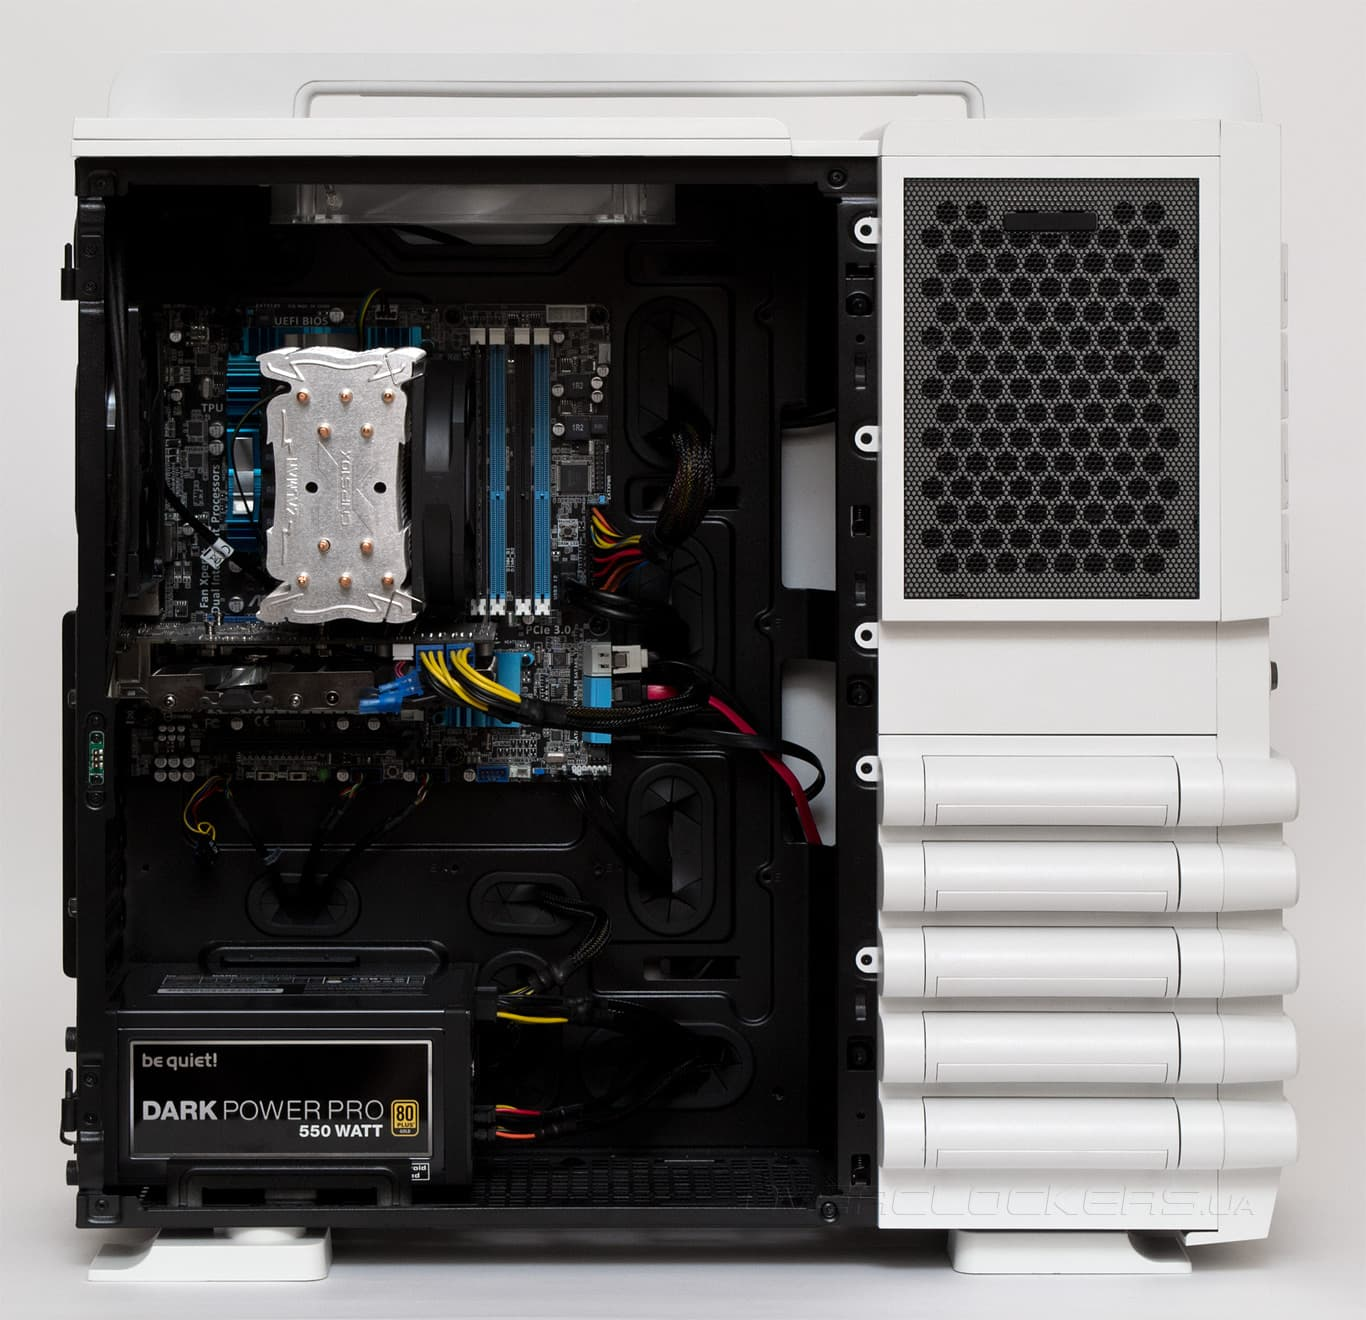 Thermaltake level 10 gt 9